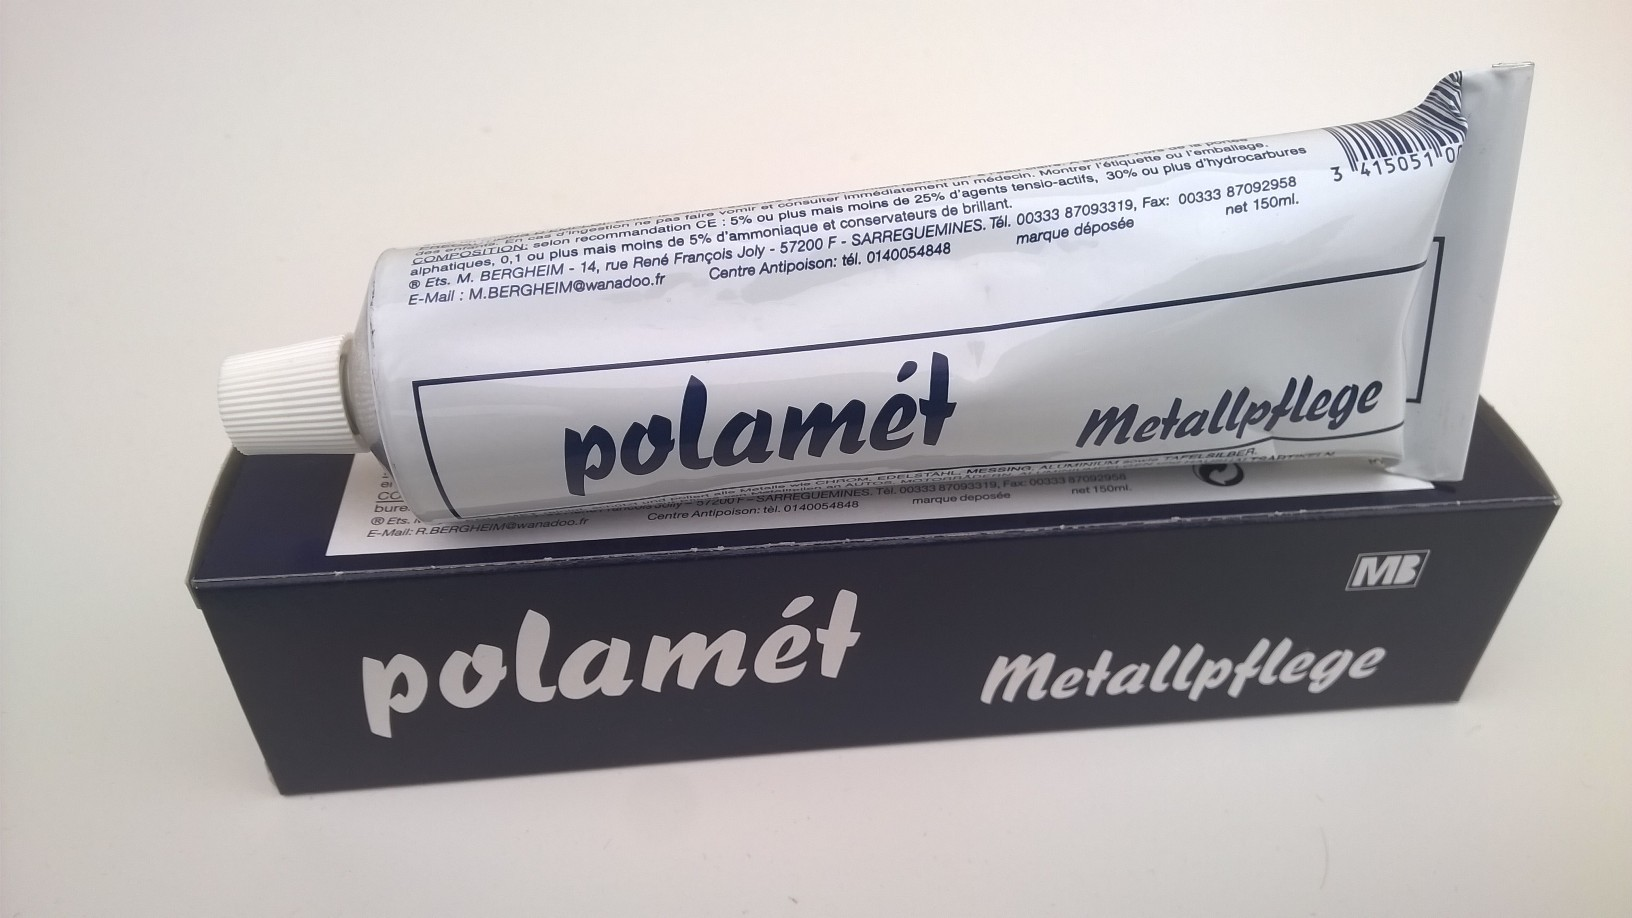 Polamèt Metallpflege, 150 ml Tube (ehem. POL-Blau)